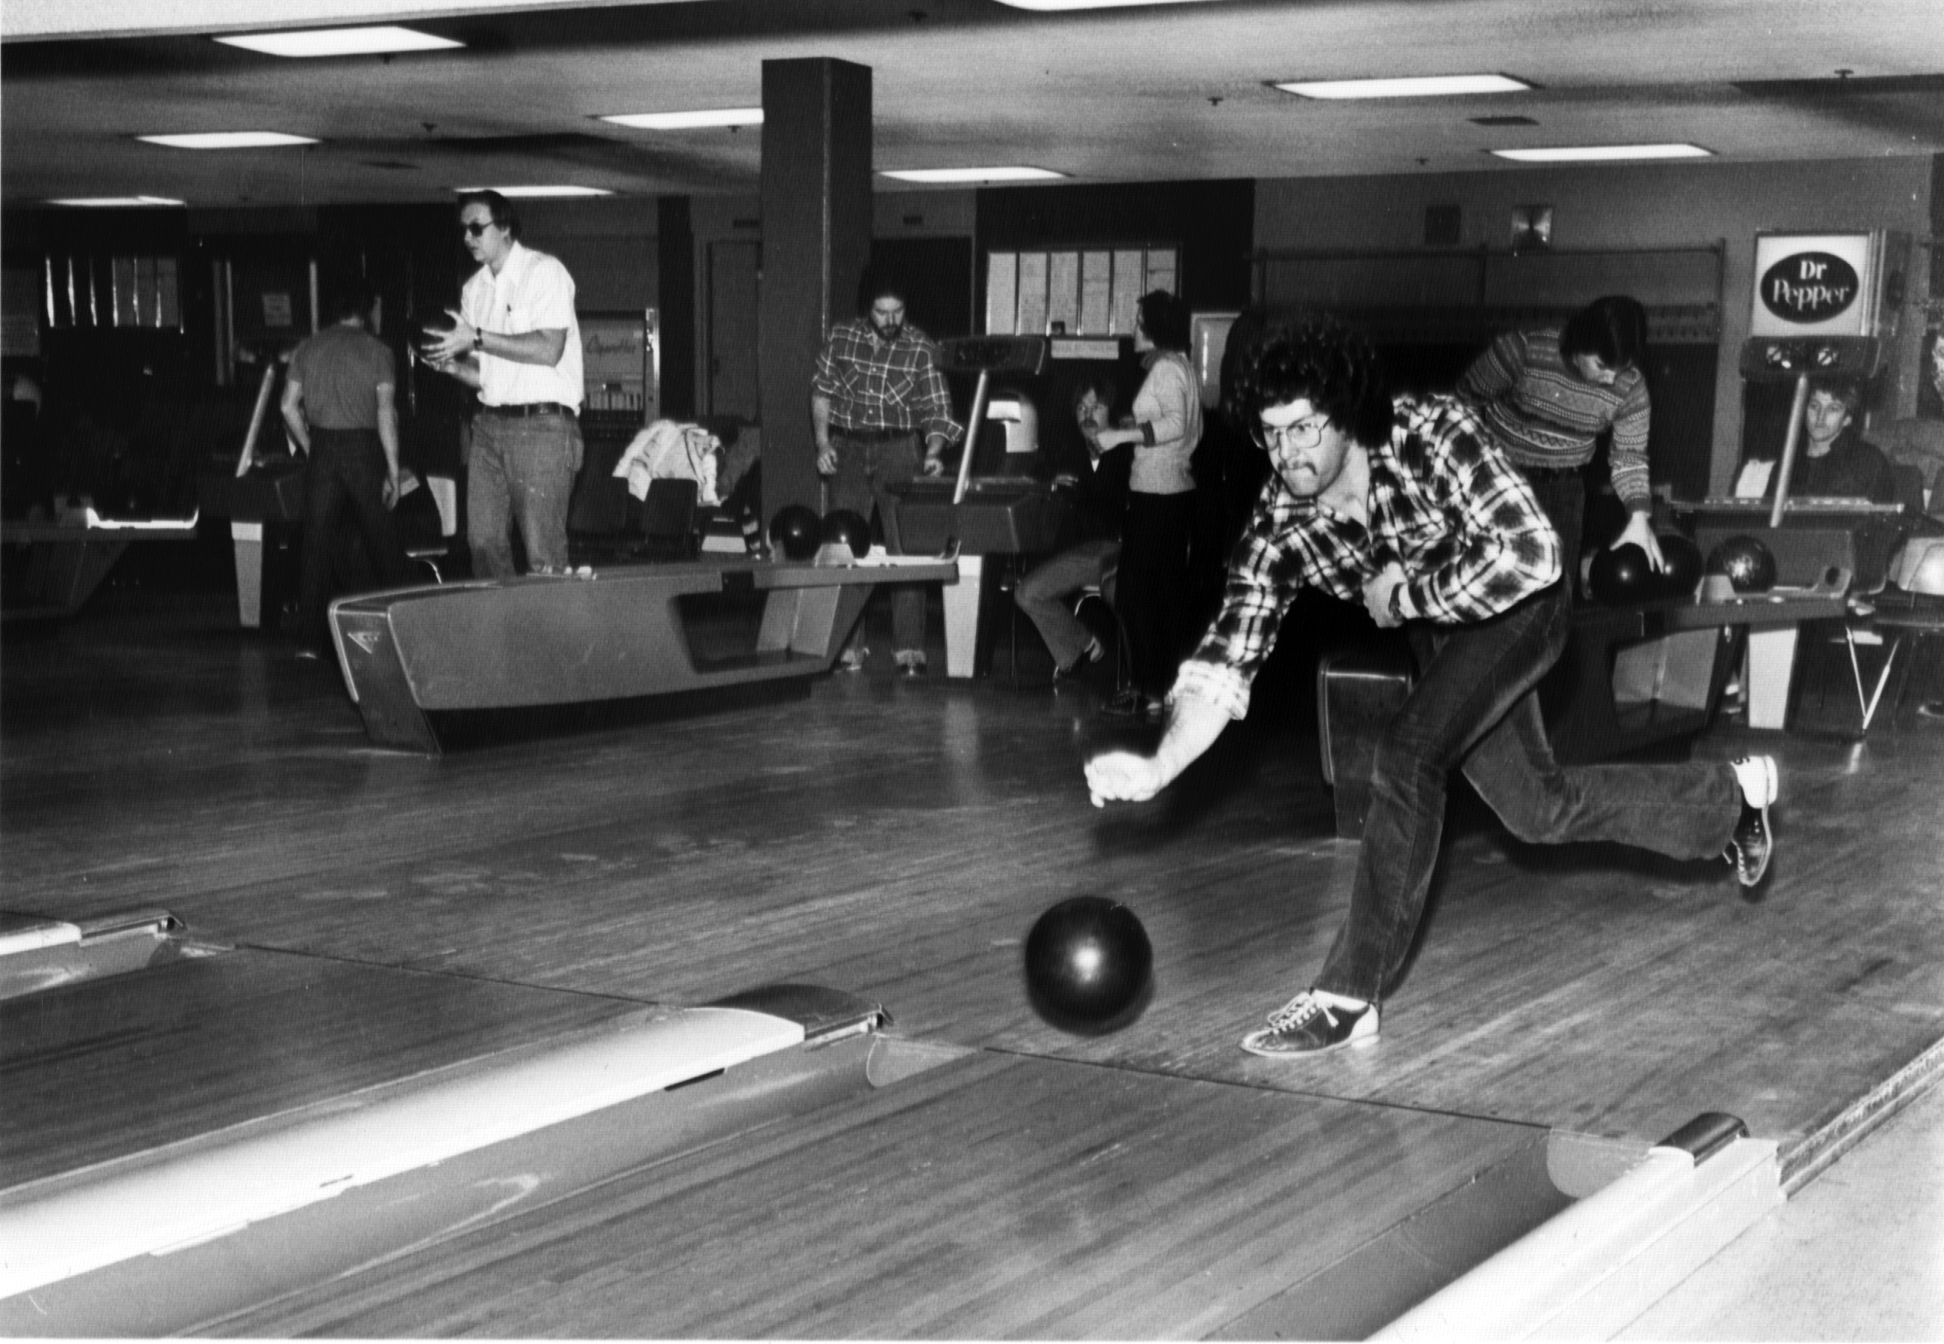 University Center Bowling Alley Northern Michigan University Marquette Michigan Northern Michigan University University Center Northern Michigan